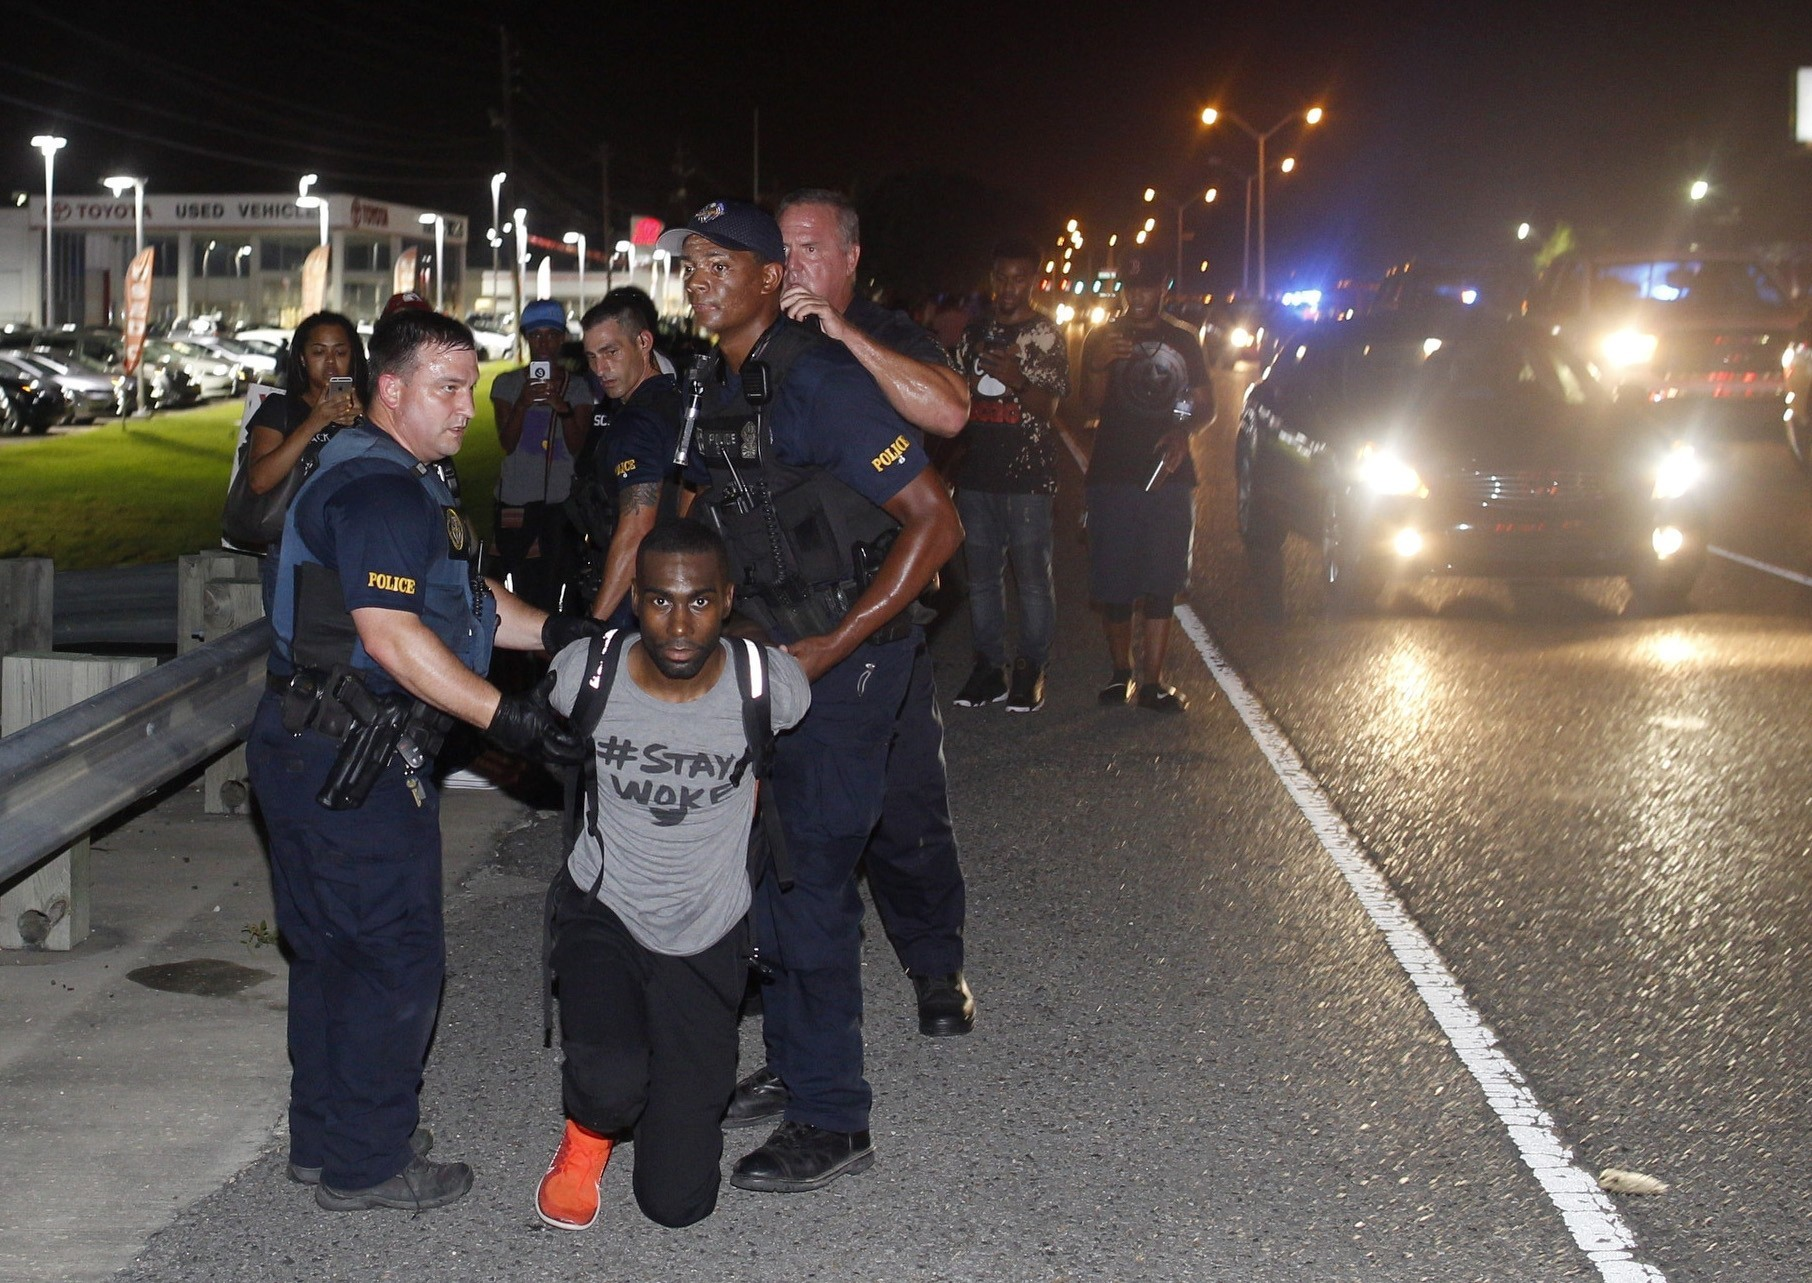 DeRay Mckesson arrested during Baton Rouge protest